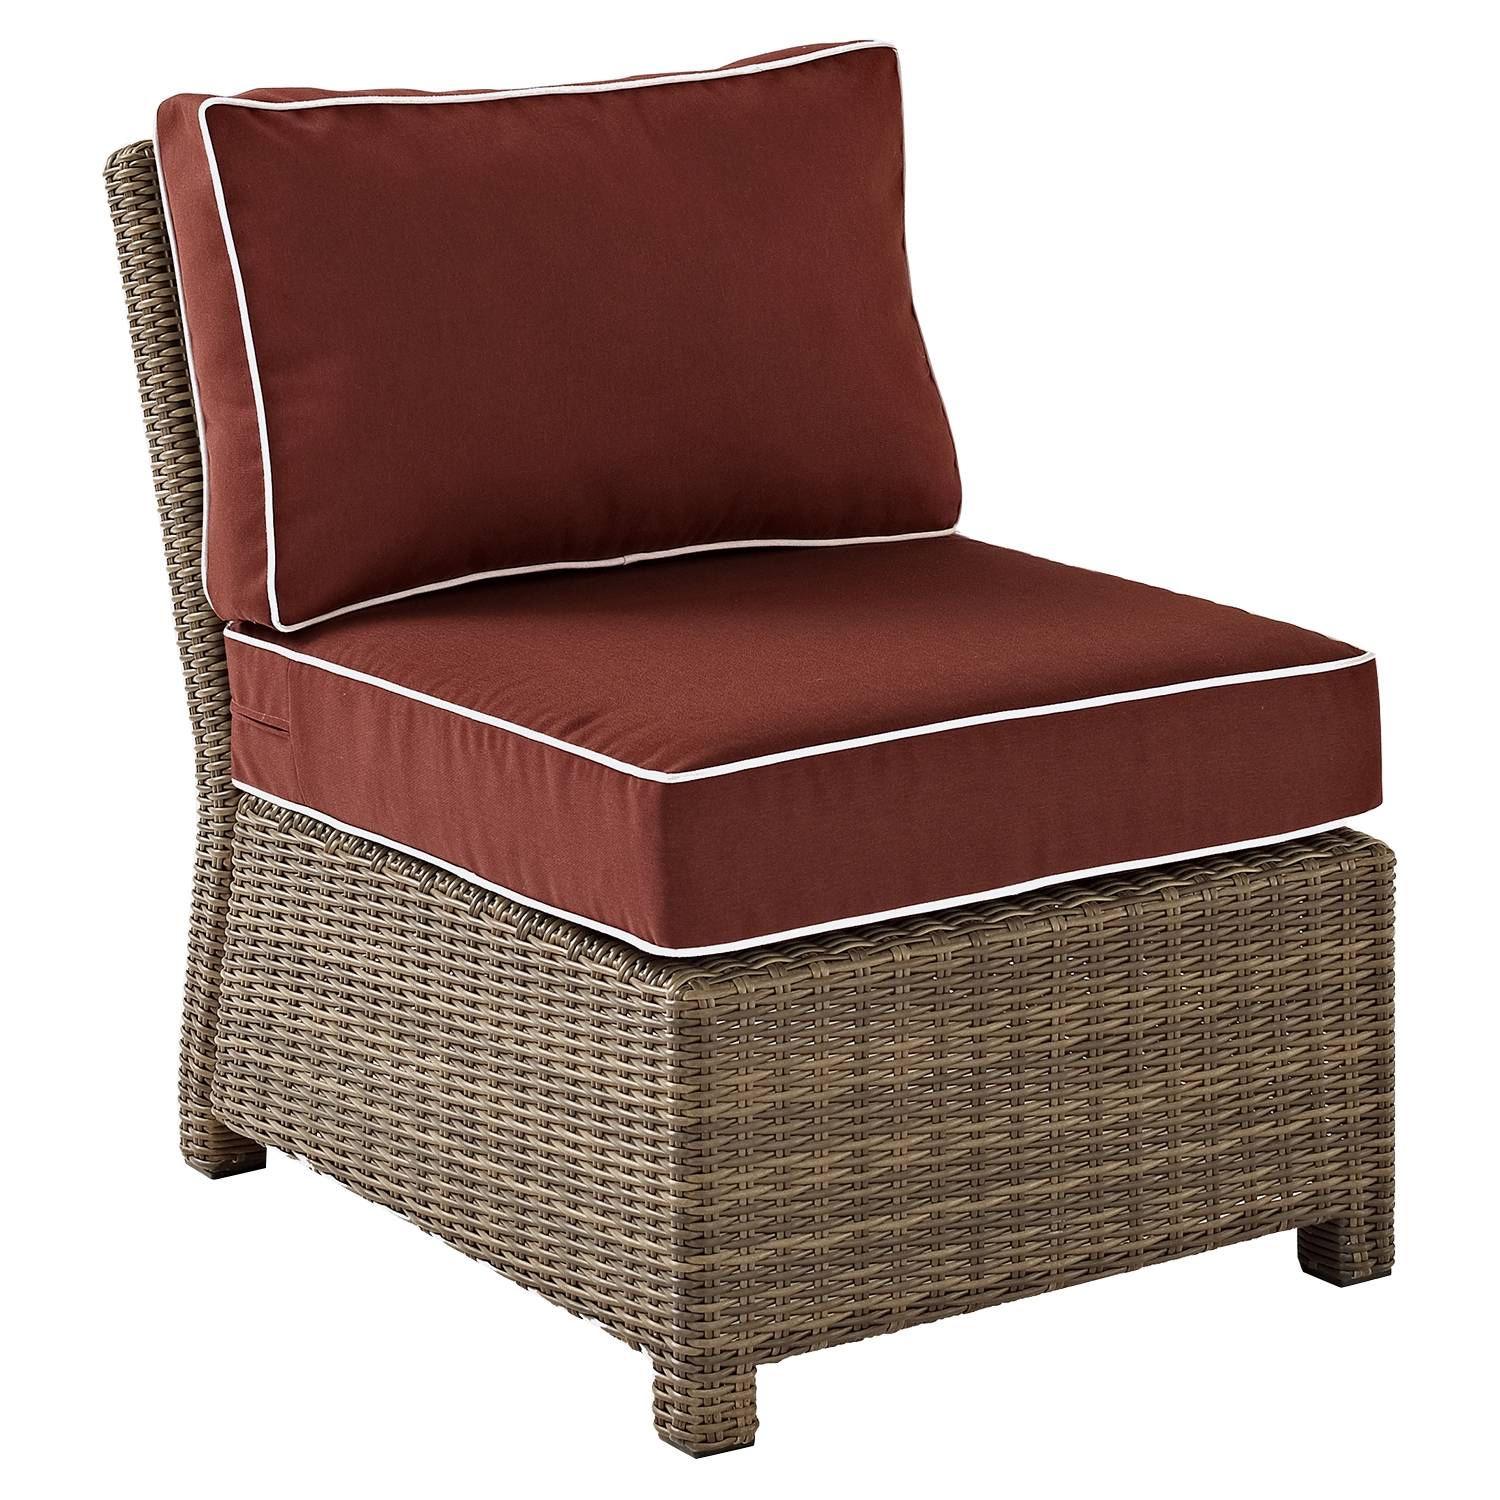 Bradenton Outdoor Wicker Sectional Center Chair - Sangria Cushions - CROS-KO70017WB-SG